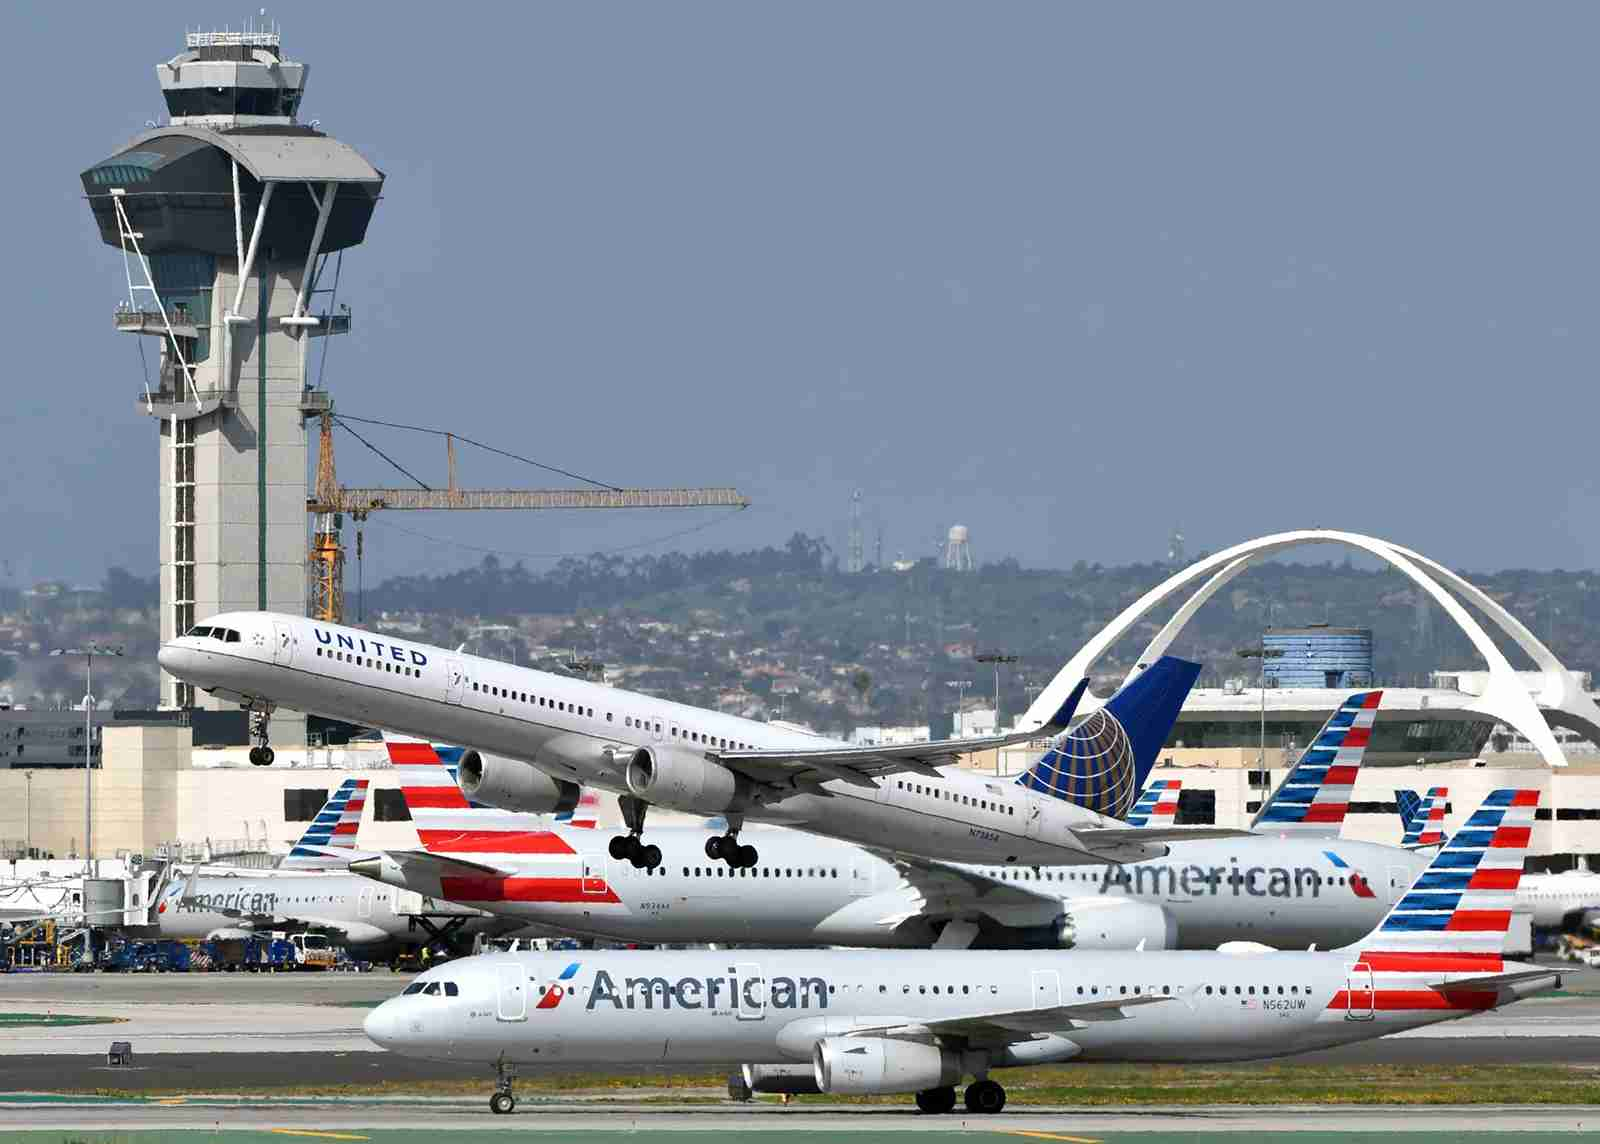 A United 757 takes off over an American A321 at LAX (Photo by Alberto Riva/TPG)